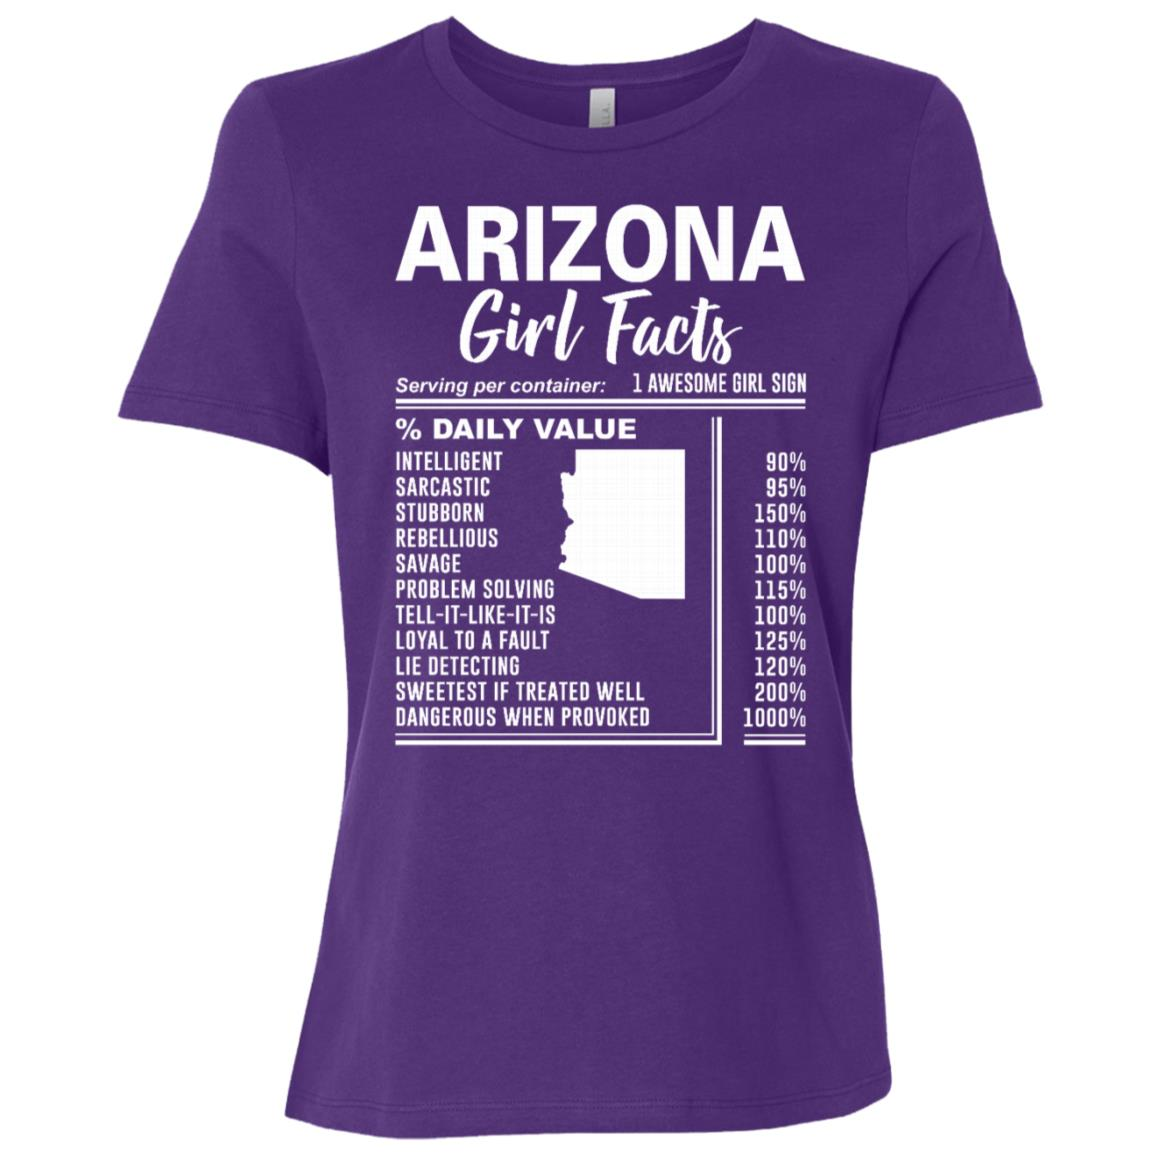 Born in Arizona – Arizona Girl Facts Women Short Sleeve T-Shirt